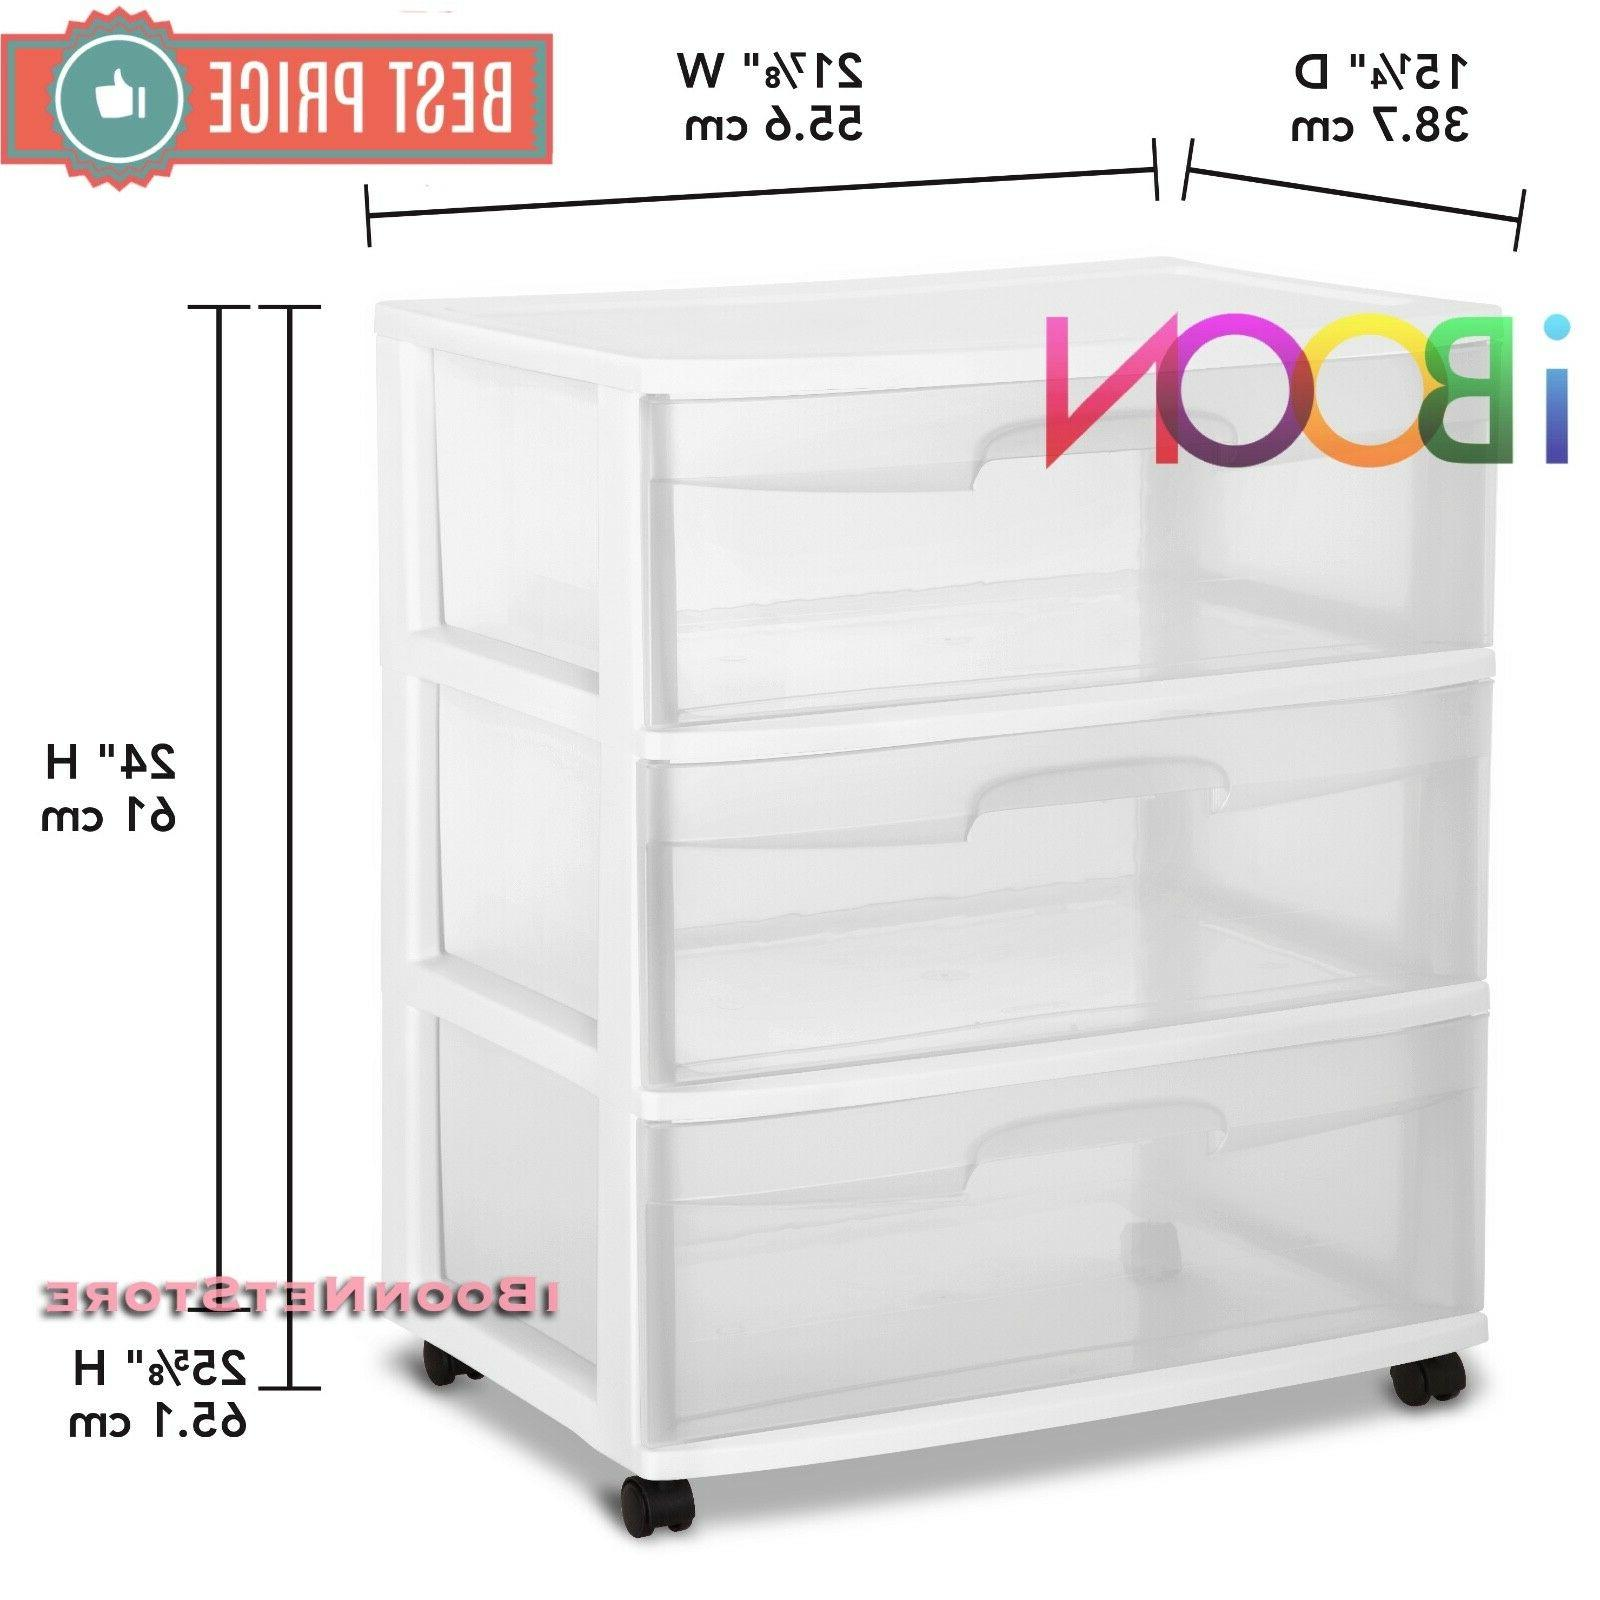 3 DRAWER PLASTIC Organizer 3 Rolling Wide Container